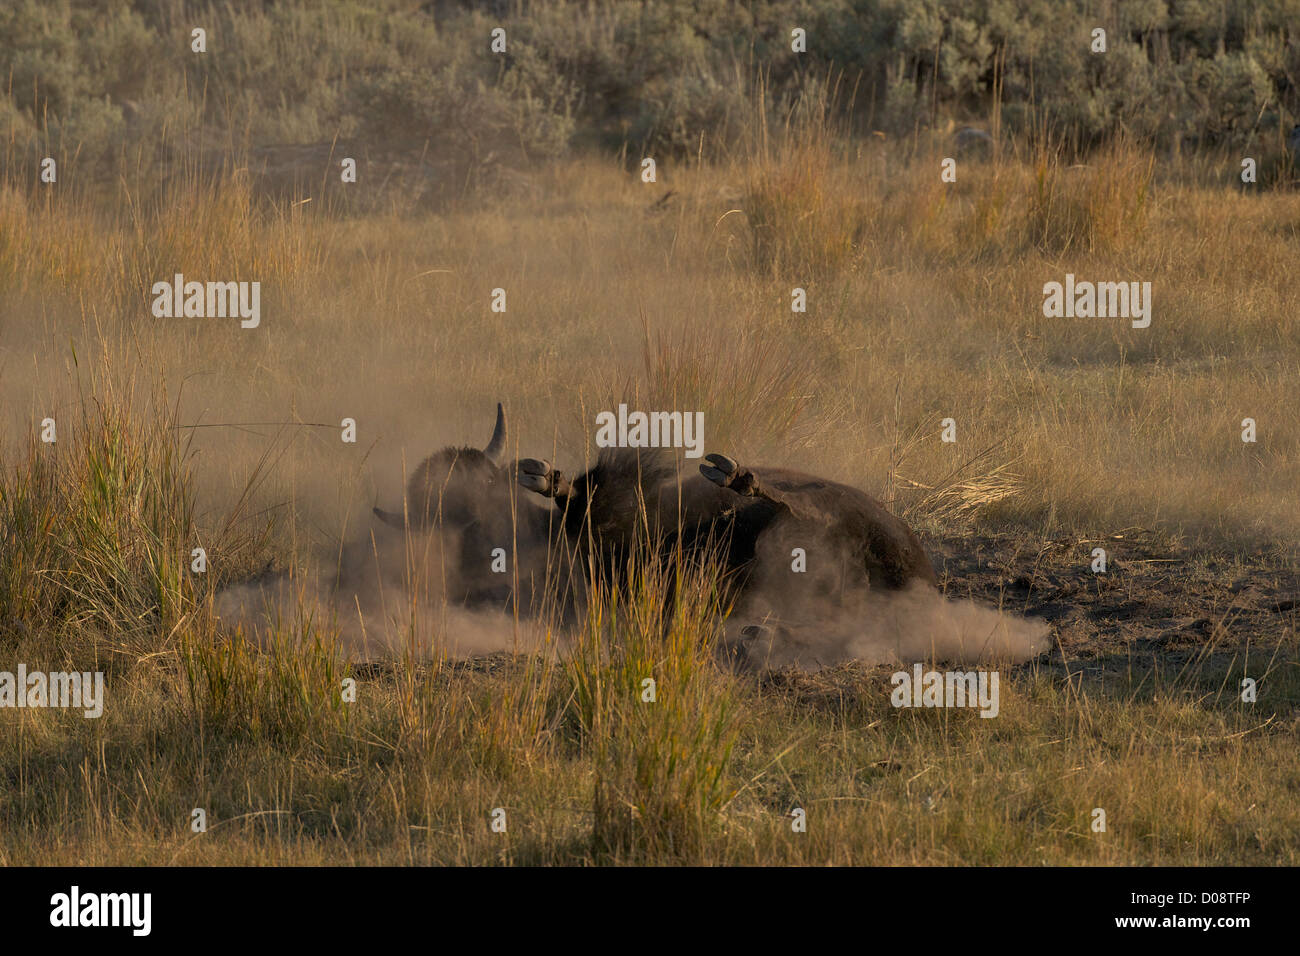 Bison enjoying a dust bath in the Lamar Valley, Yellowstone National Park, Wyoming, USA - Stock Image